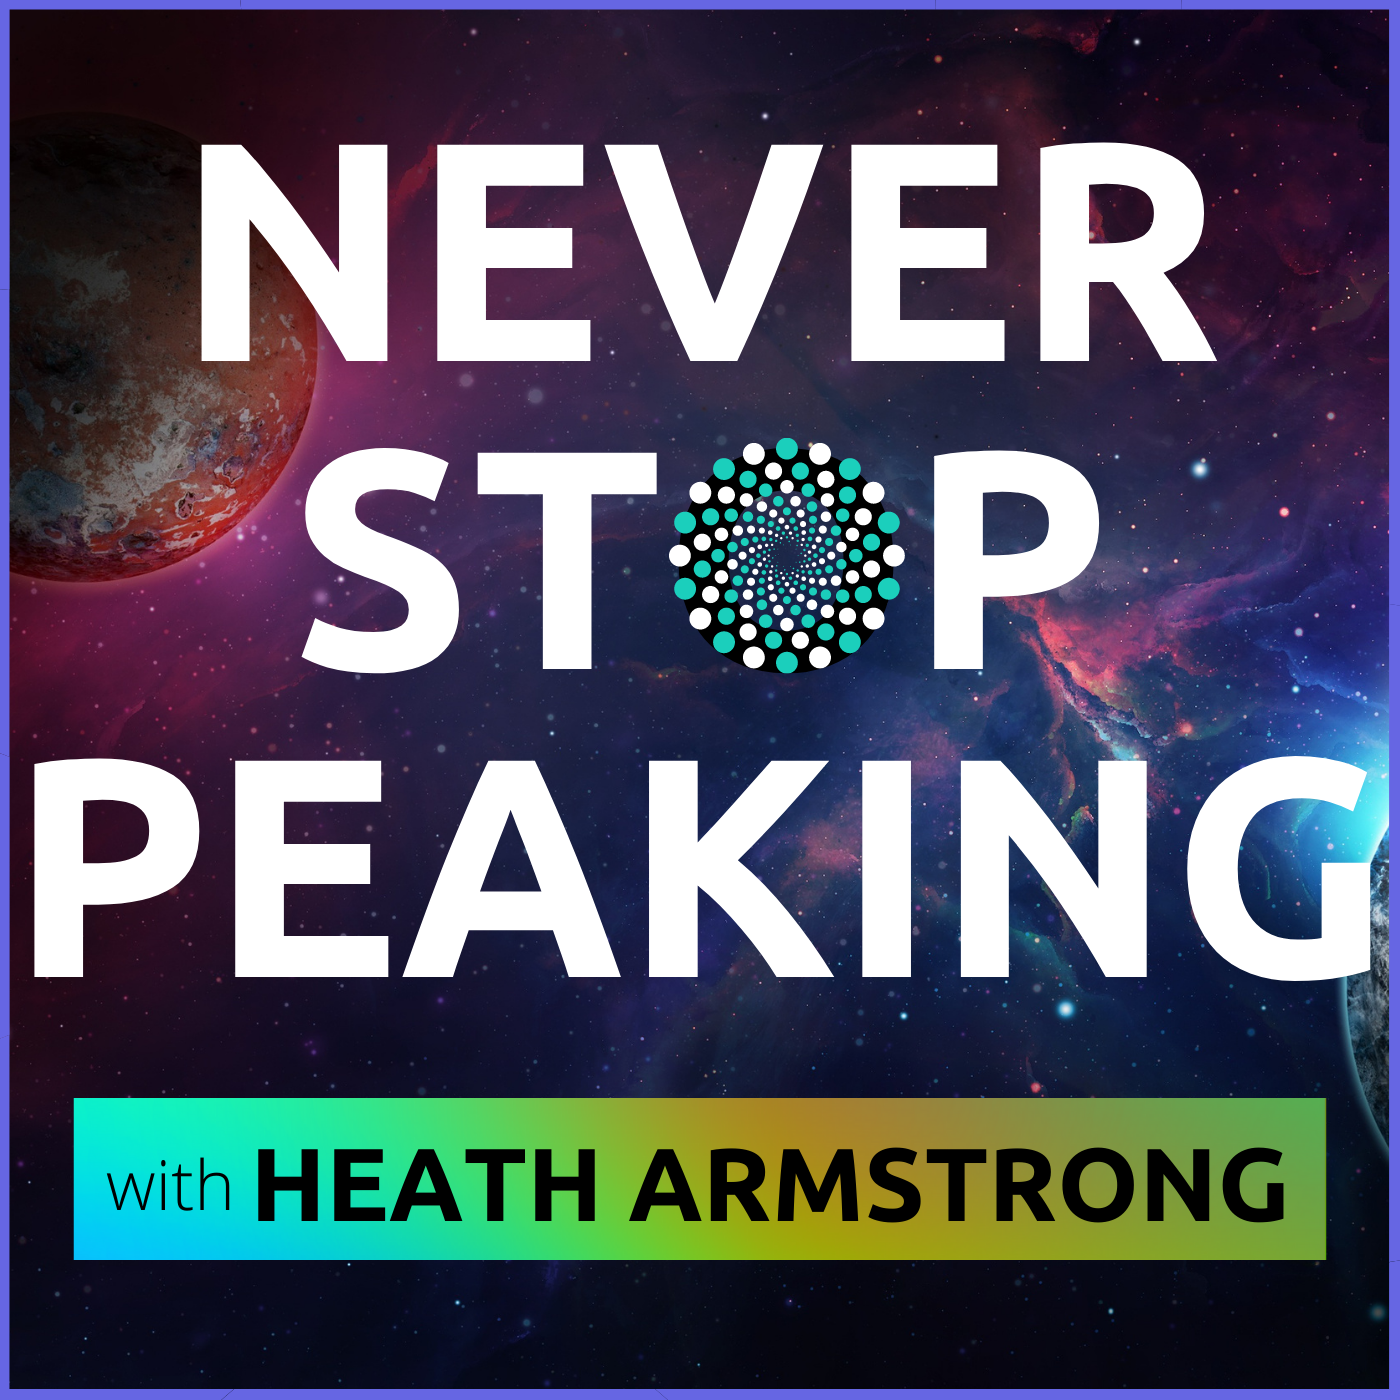 Never Stop Peaking  - Motivation for Your Creative Maniac Mind show art